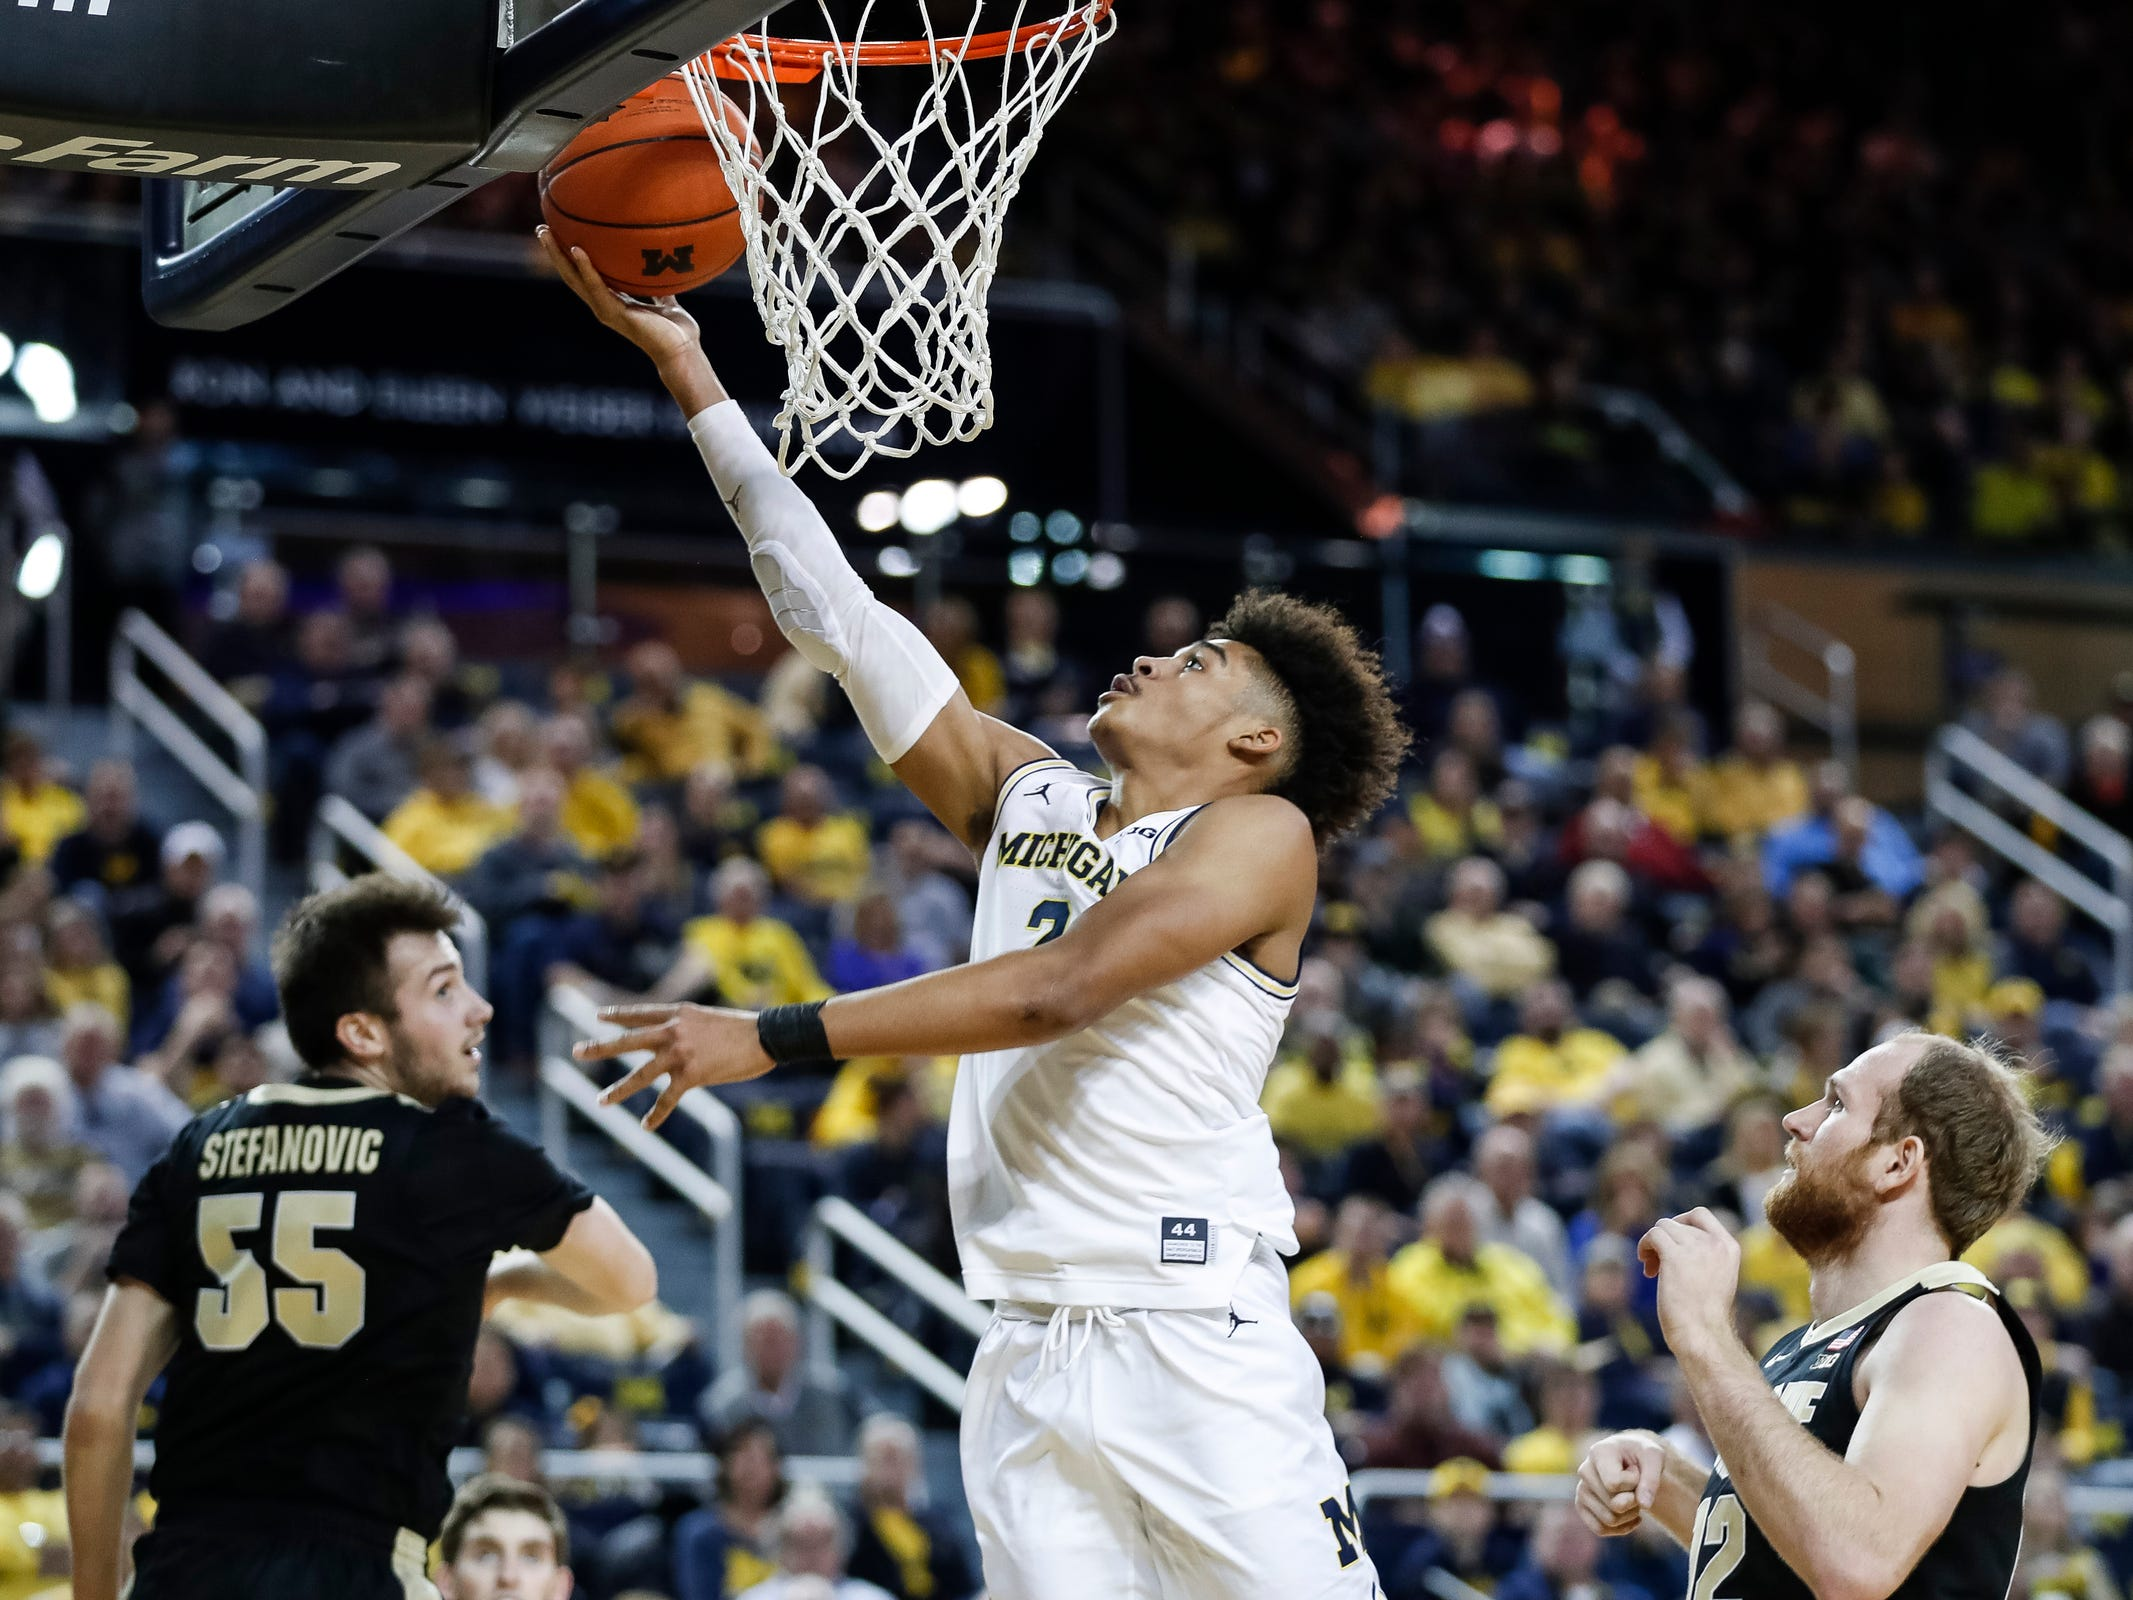 Michigan guard Jordan Poole makes a layup during the first half against Purdue at Crisler Center on Saturday, Dec. 1, 2018.